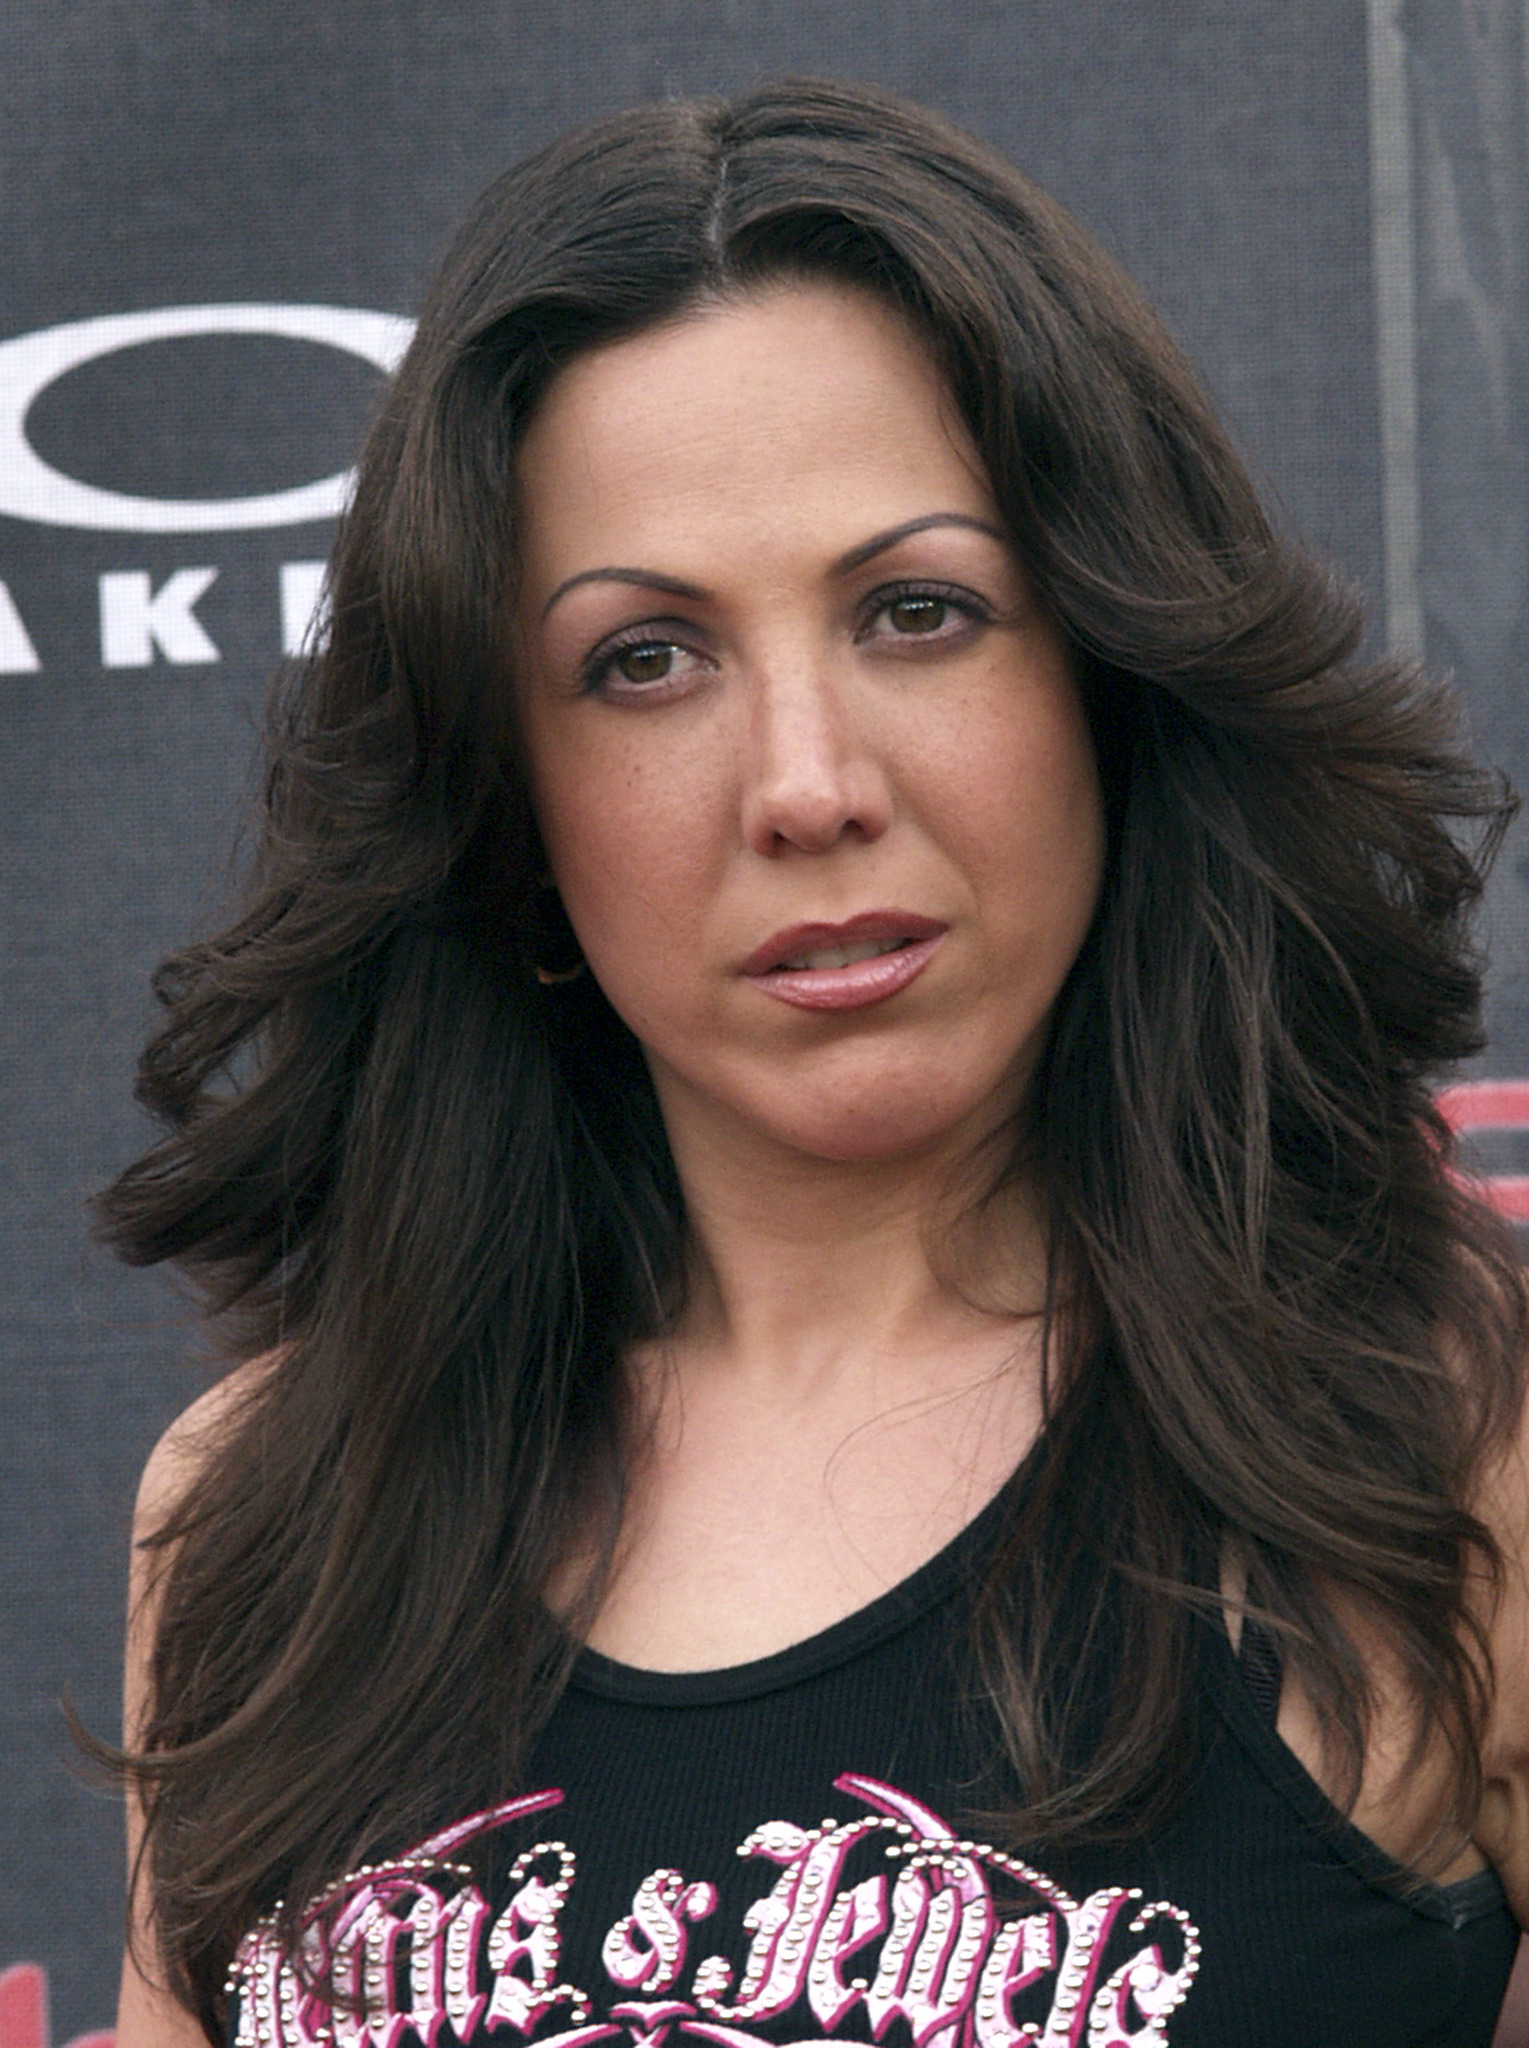 The 45-year old daughter of father (?) and mother(?) Amy Fisher in 2020 photo. Amy Fisher earned a  million dollar salary - leaving the net worth at  million in 2020